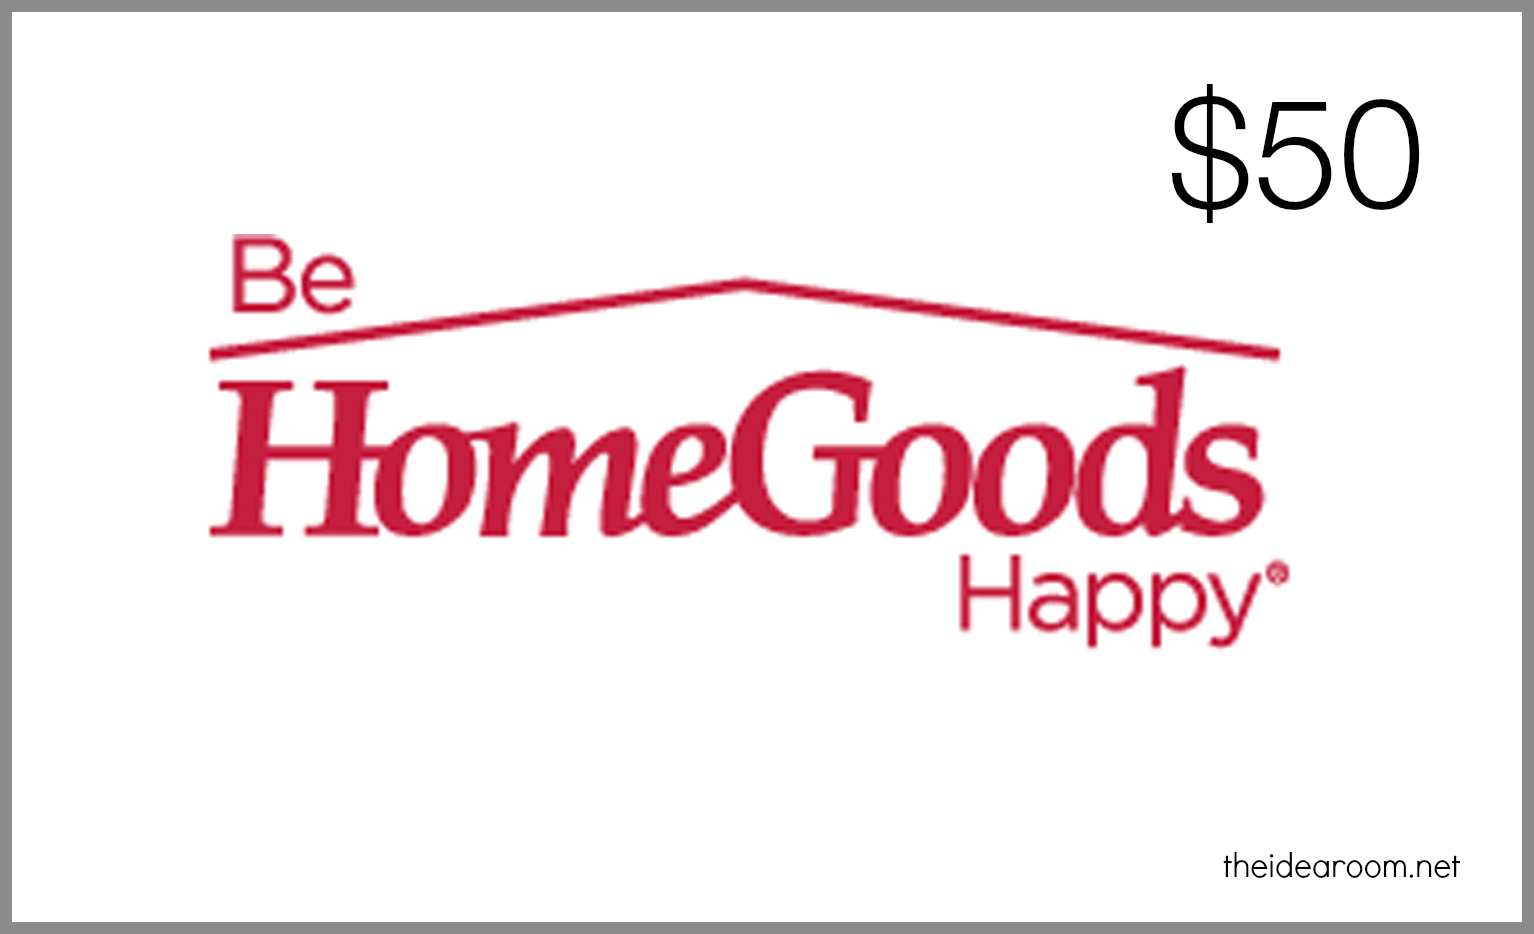 Homegoods coupons Tennis warehouse coupon